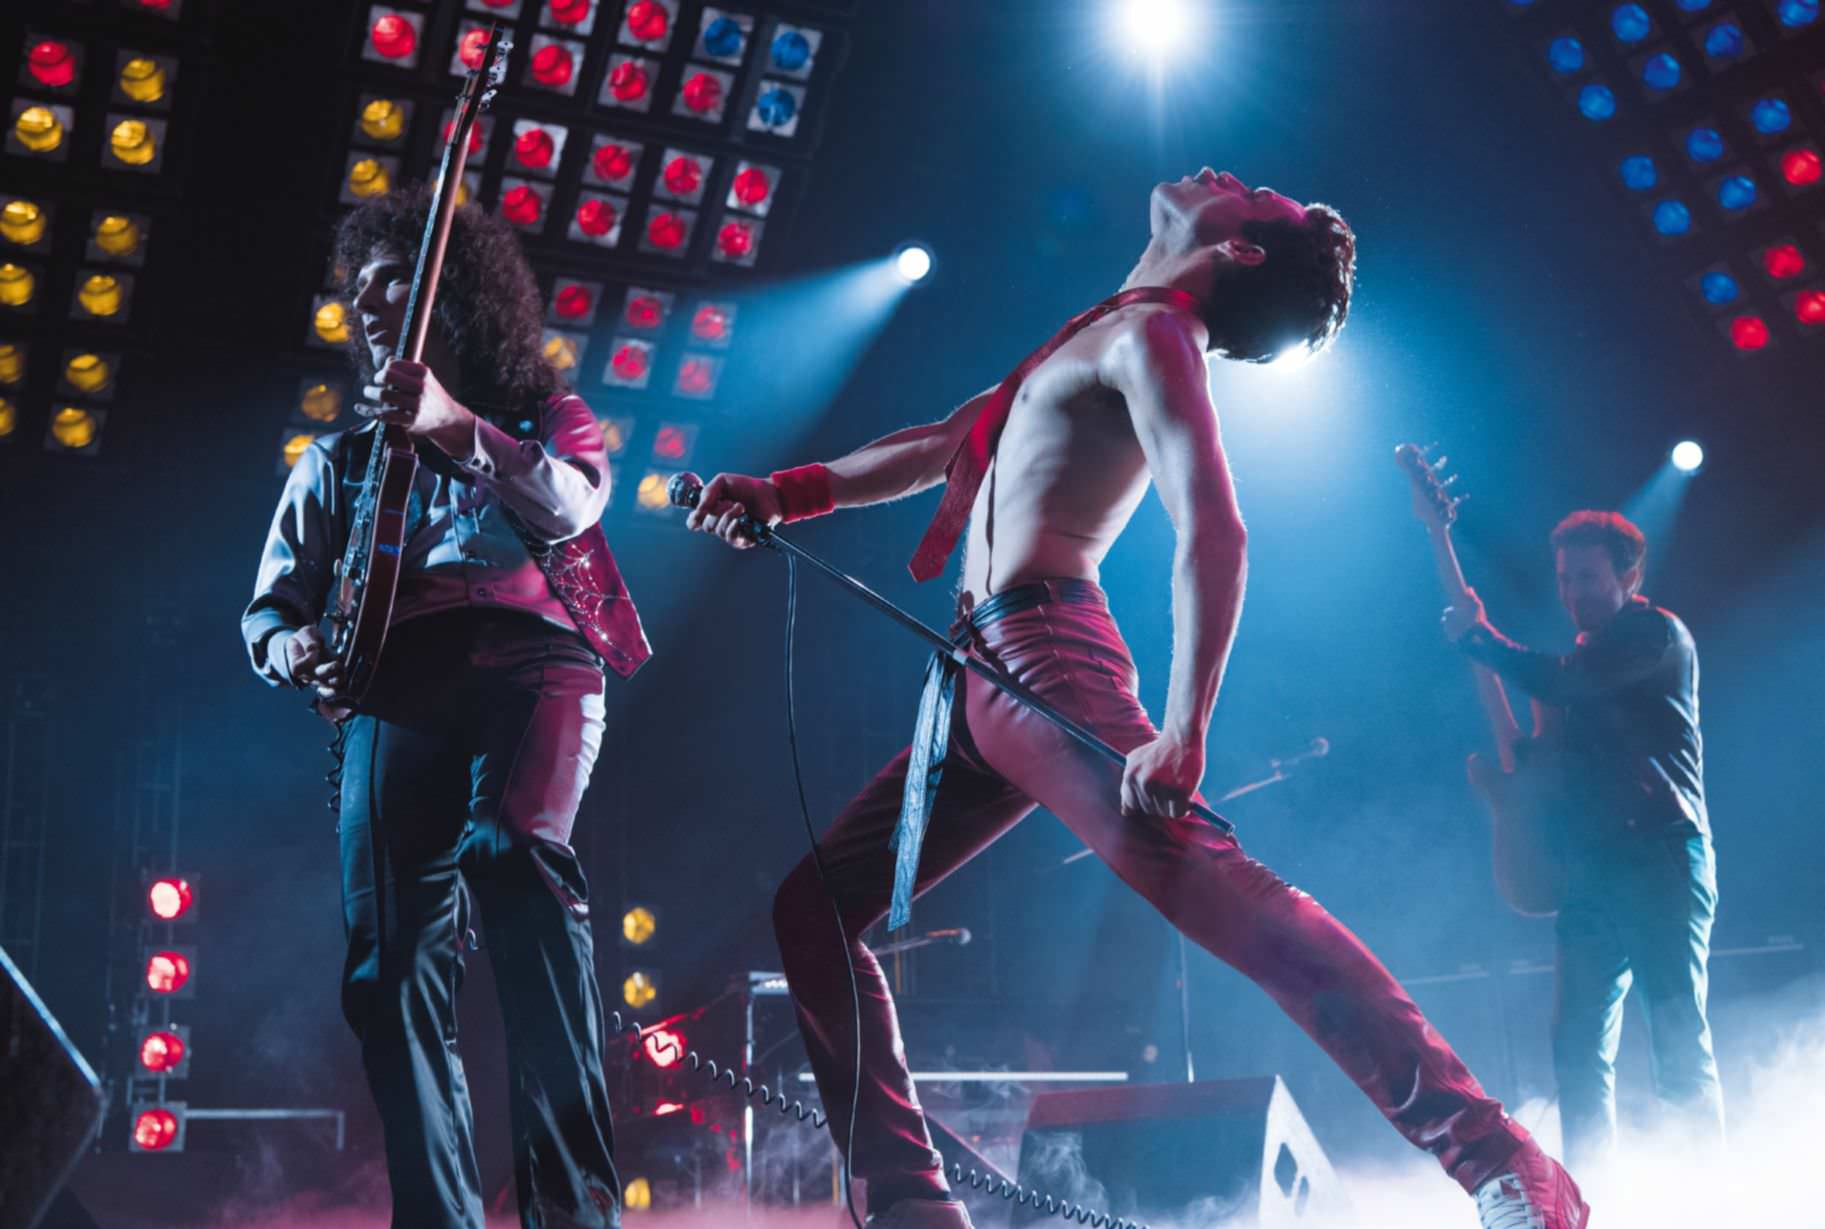 Bohemian Rhapsody At The Movies...